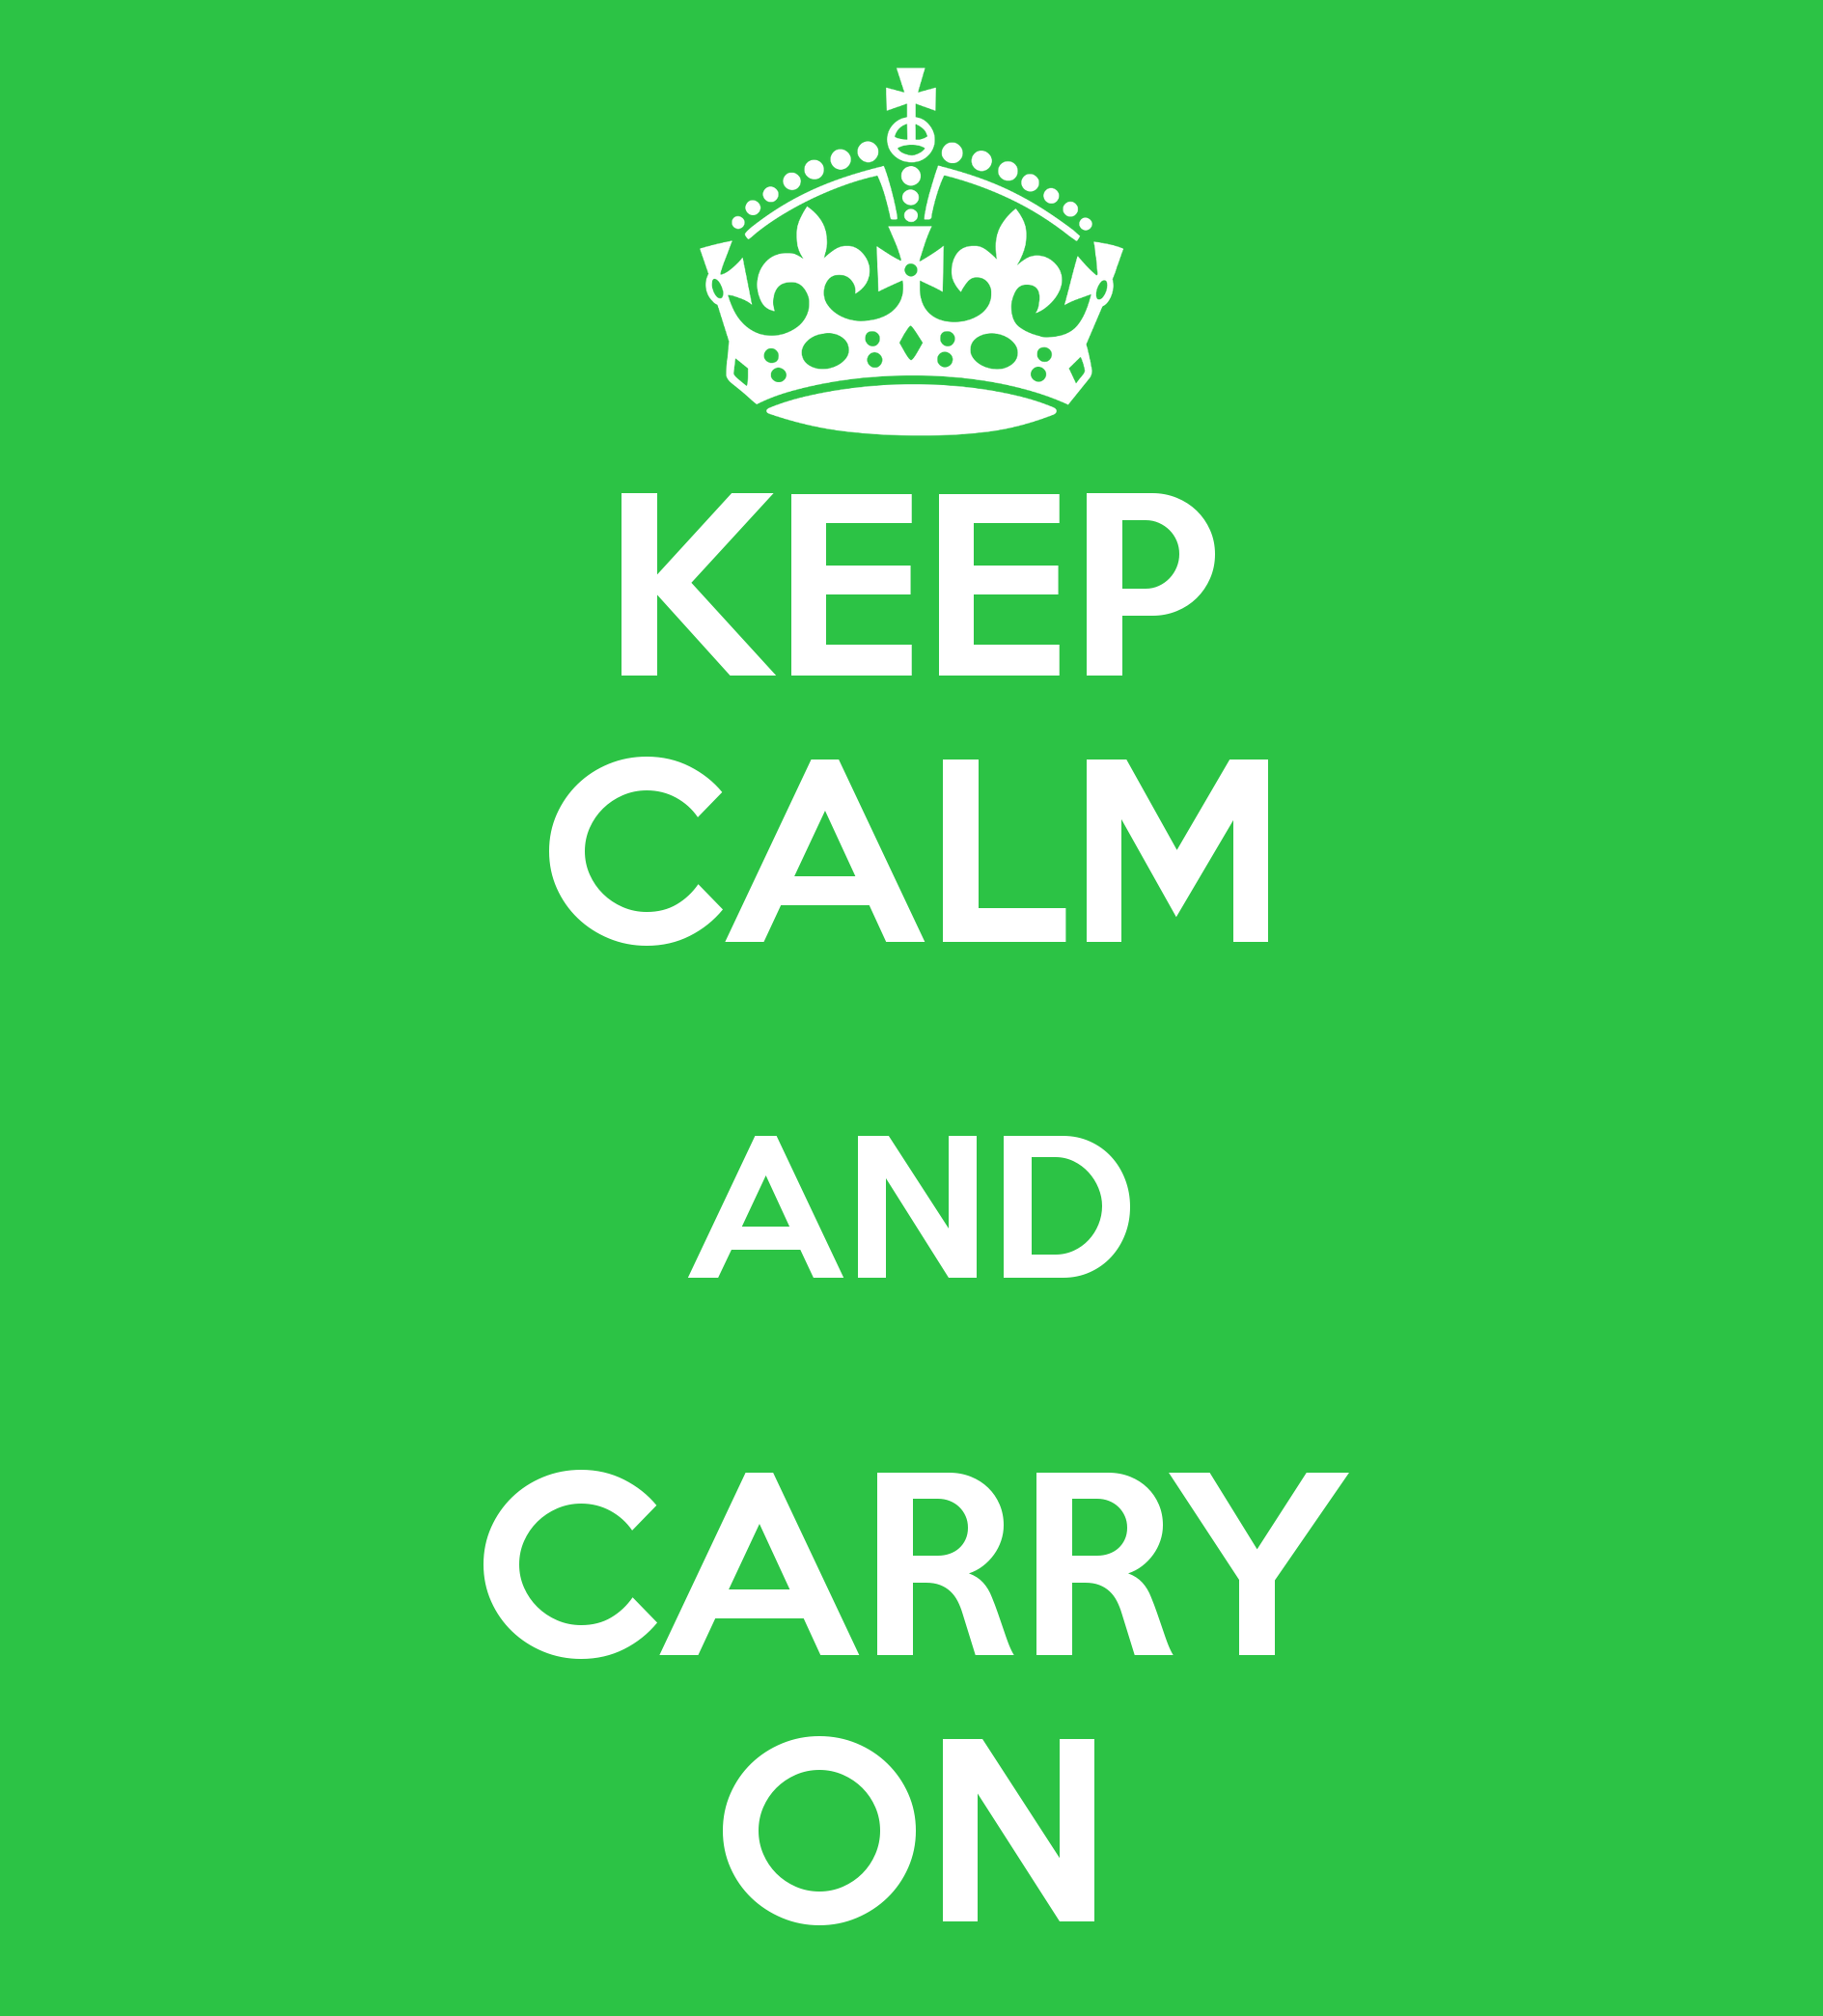 Keep Calm and carry on crown VECTOR READY TO ADD YOUR OWN ... |Keep Calm And Carry On Crown Vector